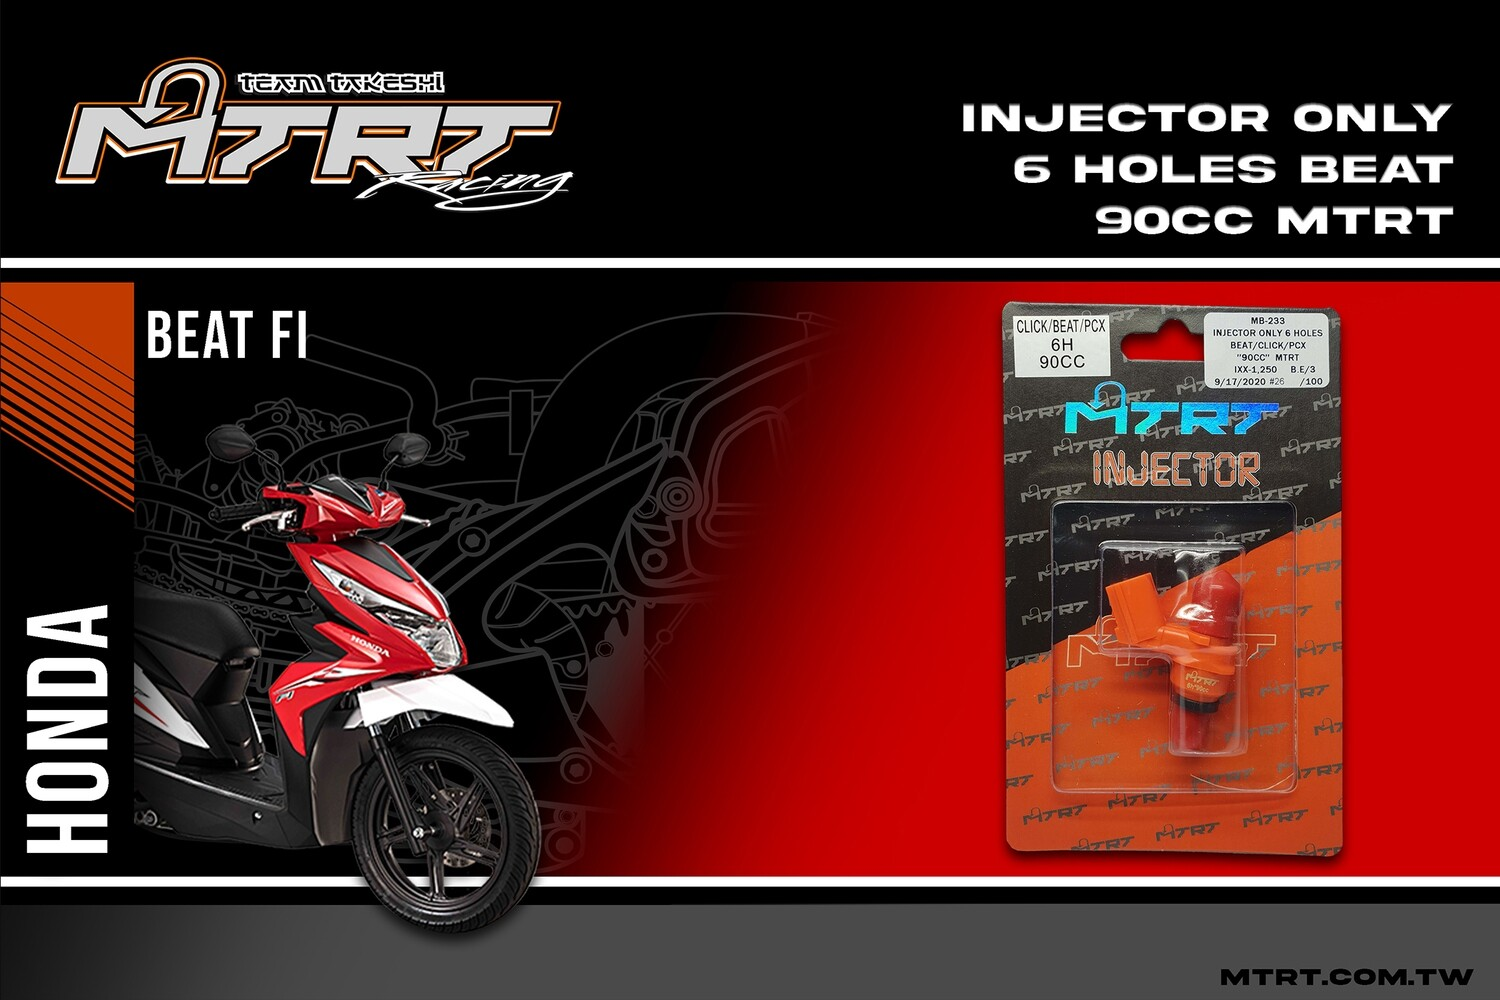 INJECTOR ONLY 6HOLES BEAT CLICK PCX 90CC MTRT